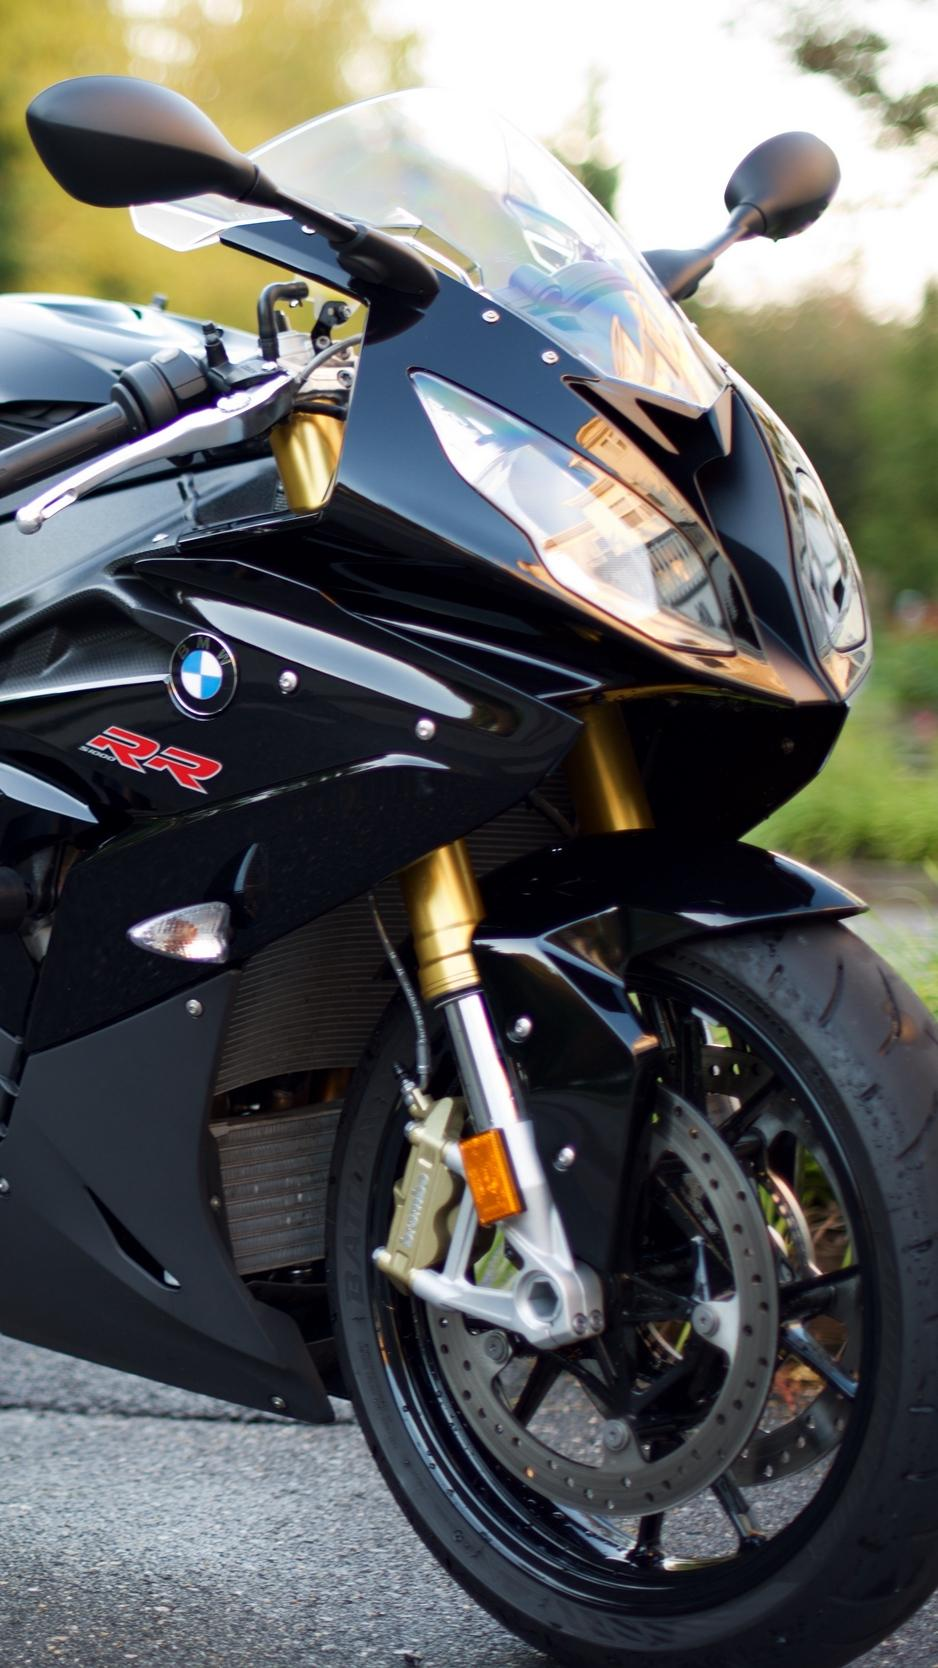 Bmw S1000rr Bike Phone Hd Wallpapers Wallpaper Cave